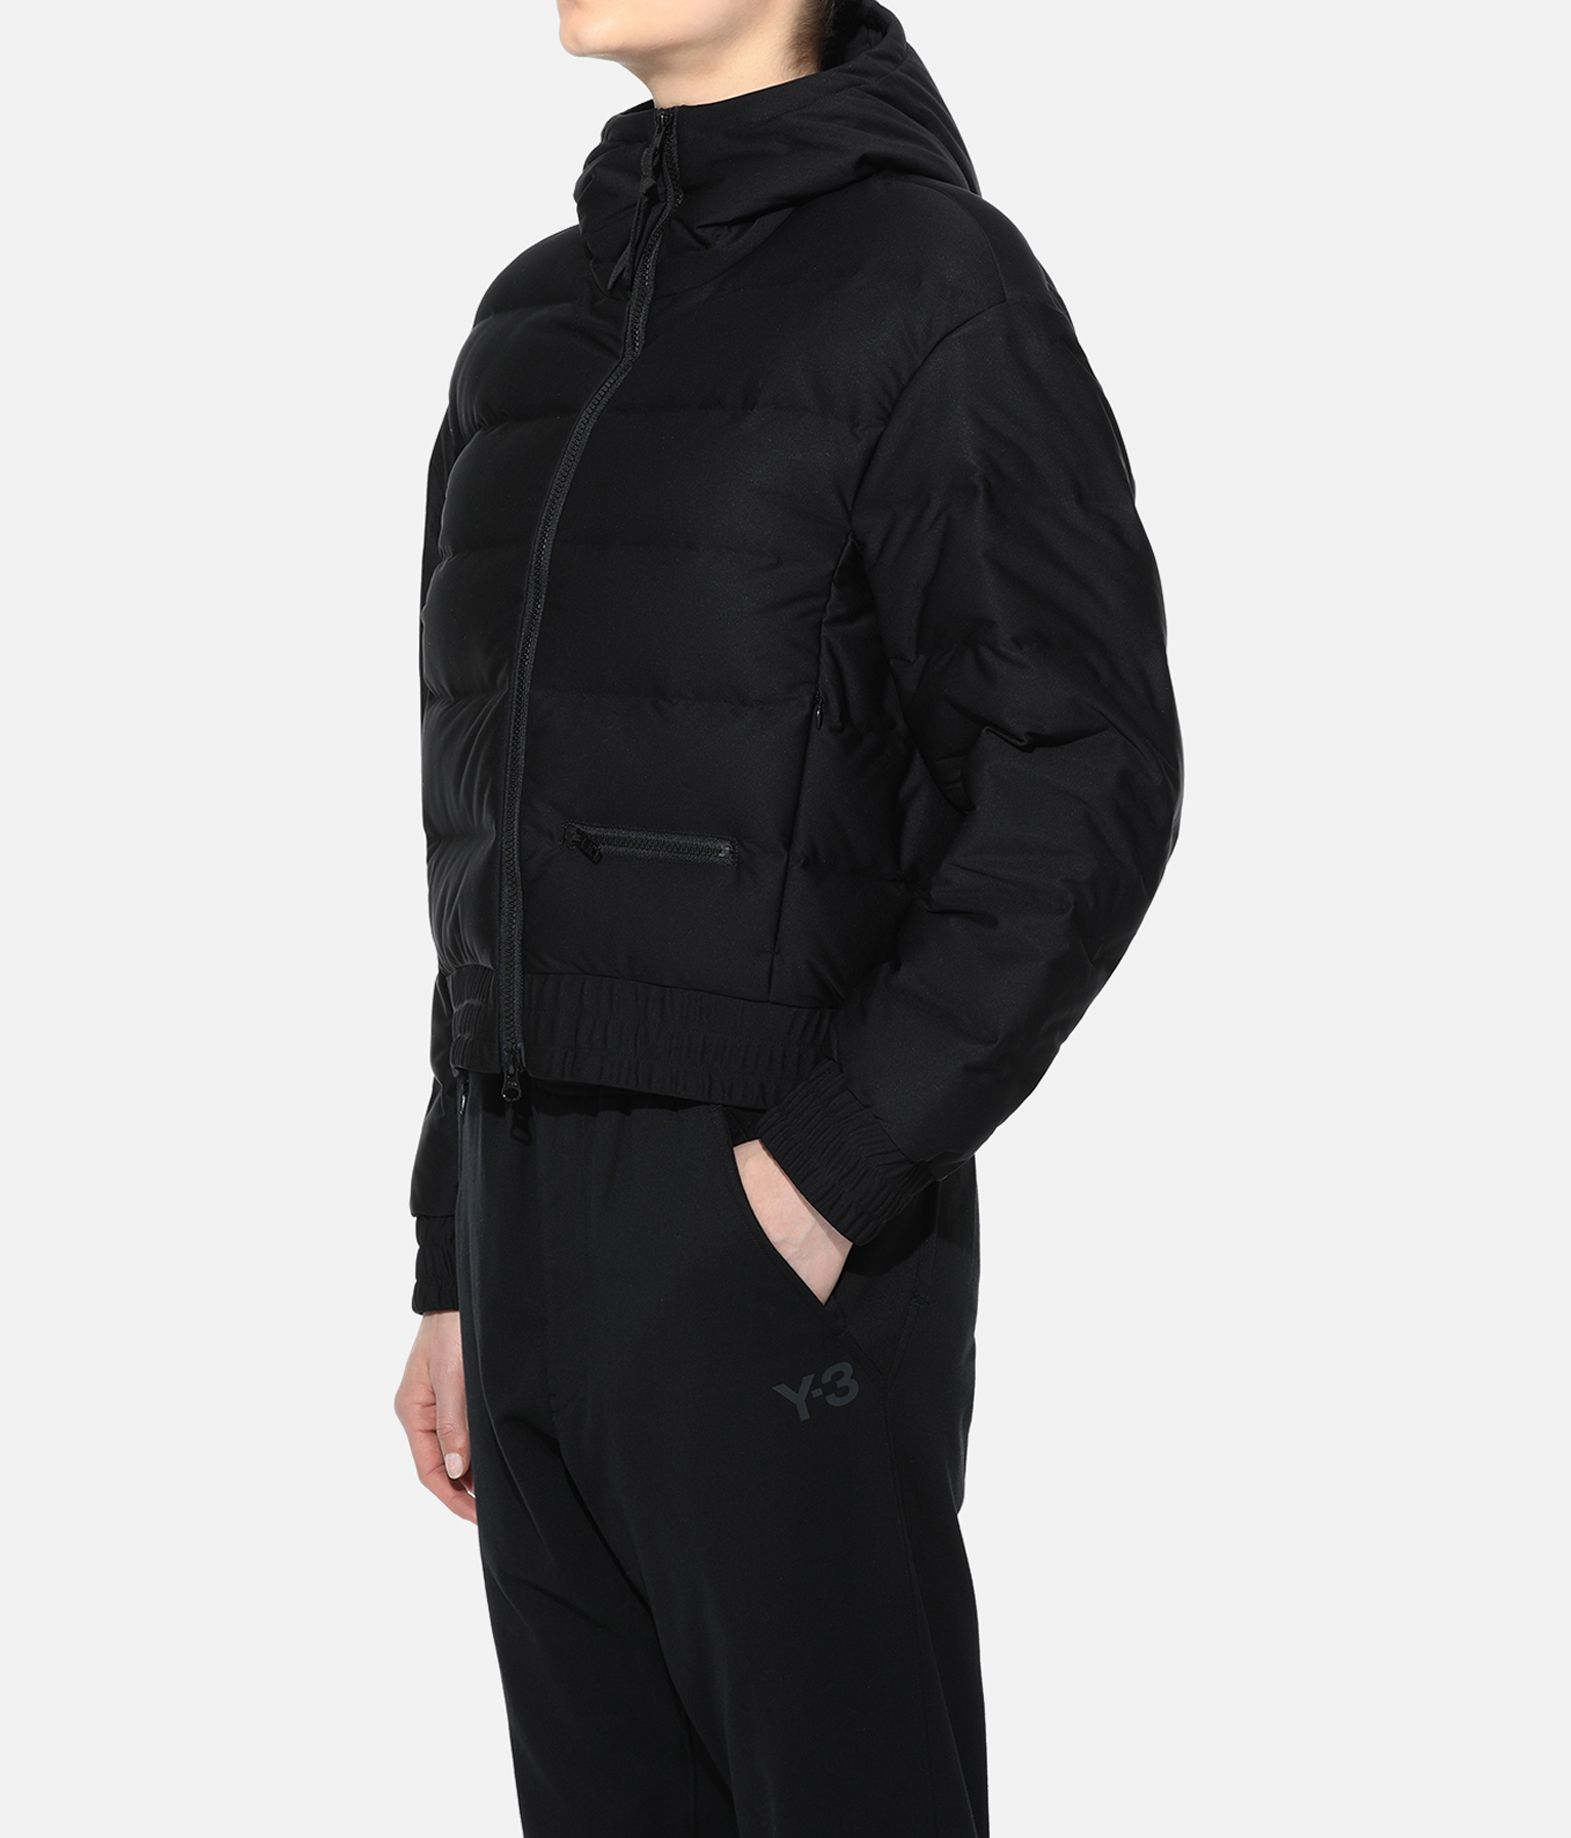 Y-3 Y-3 Seamless Down Hooded Jacket Jacket Woman e